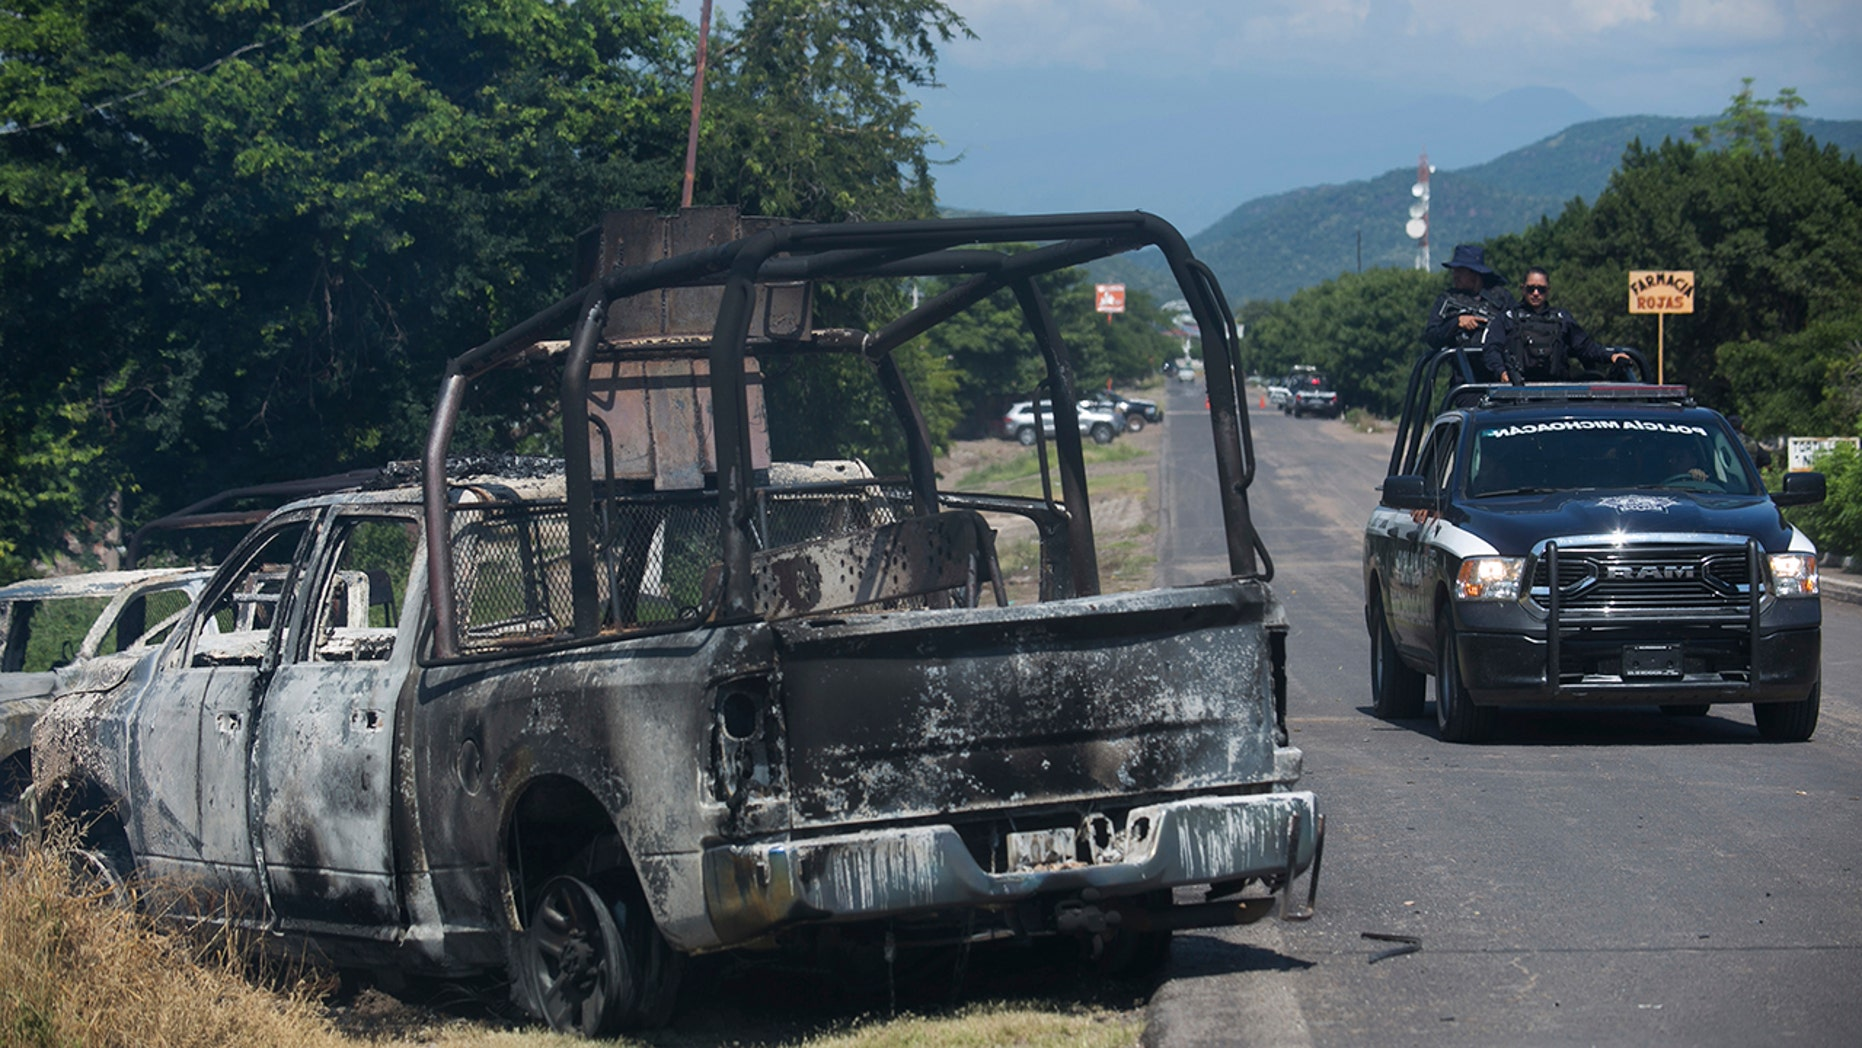 These burned out police vehicles contained the bodies of dead officers. (AP)